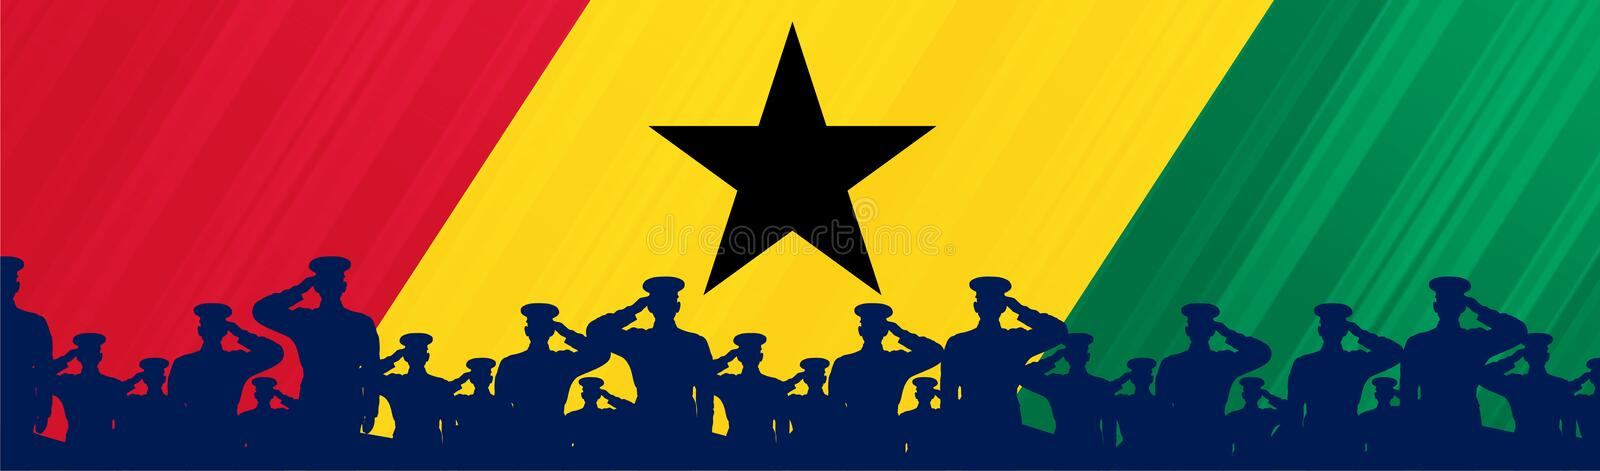 De achtergrond van de de Onafhankelijkheidsdag van Ghana in het nationale thema van de vlagkleur Vector illustratie stock illustratie